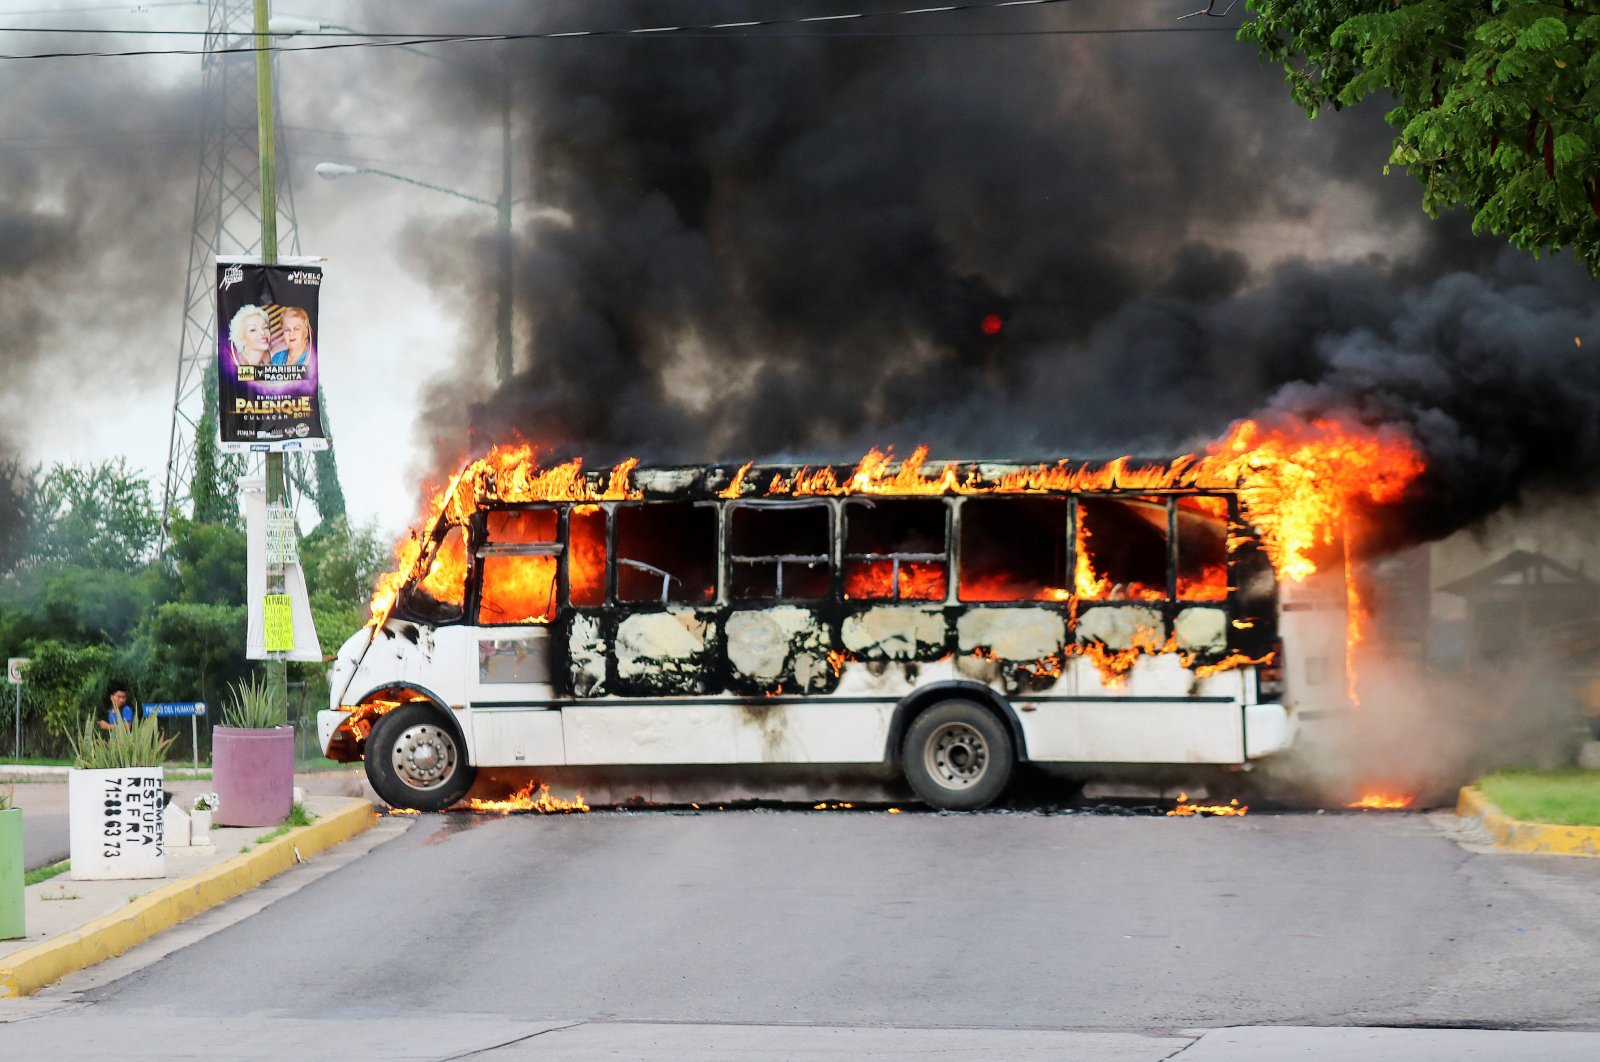 """A burning bus, set alight by cartel gunmen to block a road, is pictured during clashes with federal forces following the detention of Ovidio Guzman, son of drug kingpin Joaquin """"El Chapo"""" Guzman Culiacan, Sinaloa state, Mexico, Oct. 17, 2019. (Reuters Photo)"""